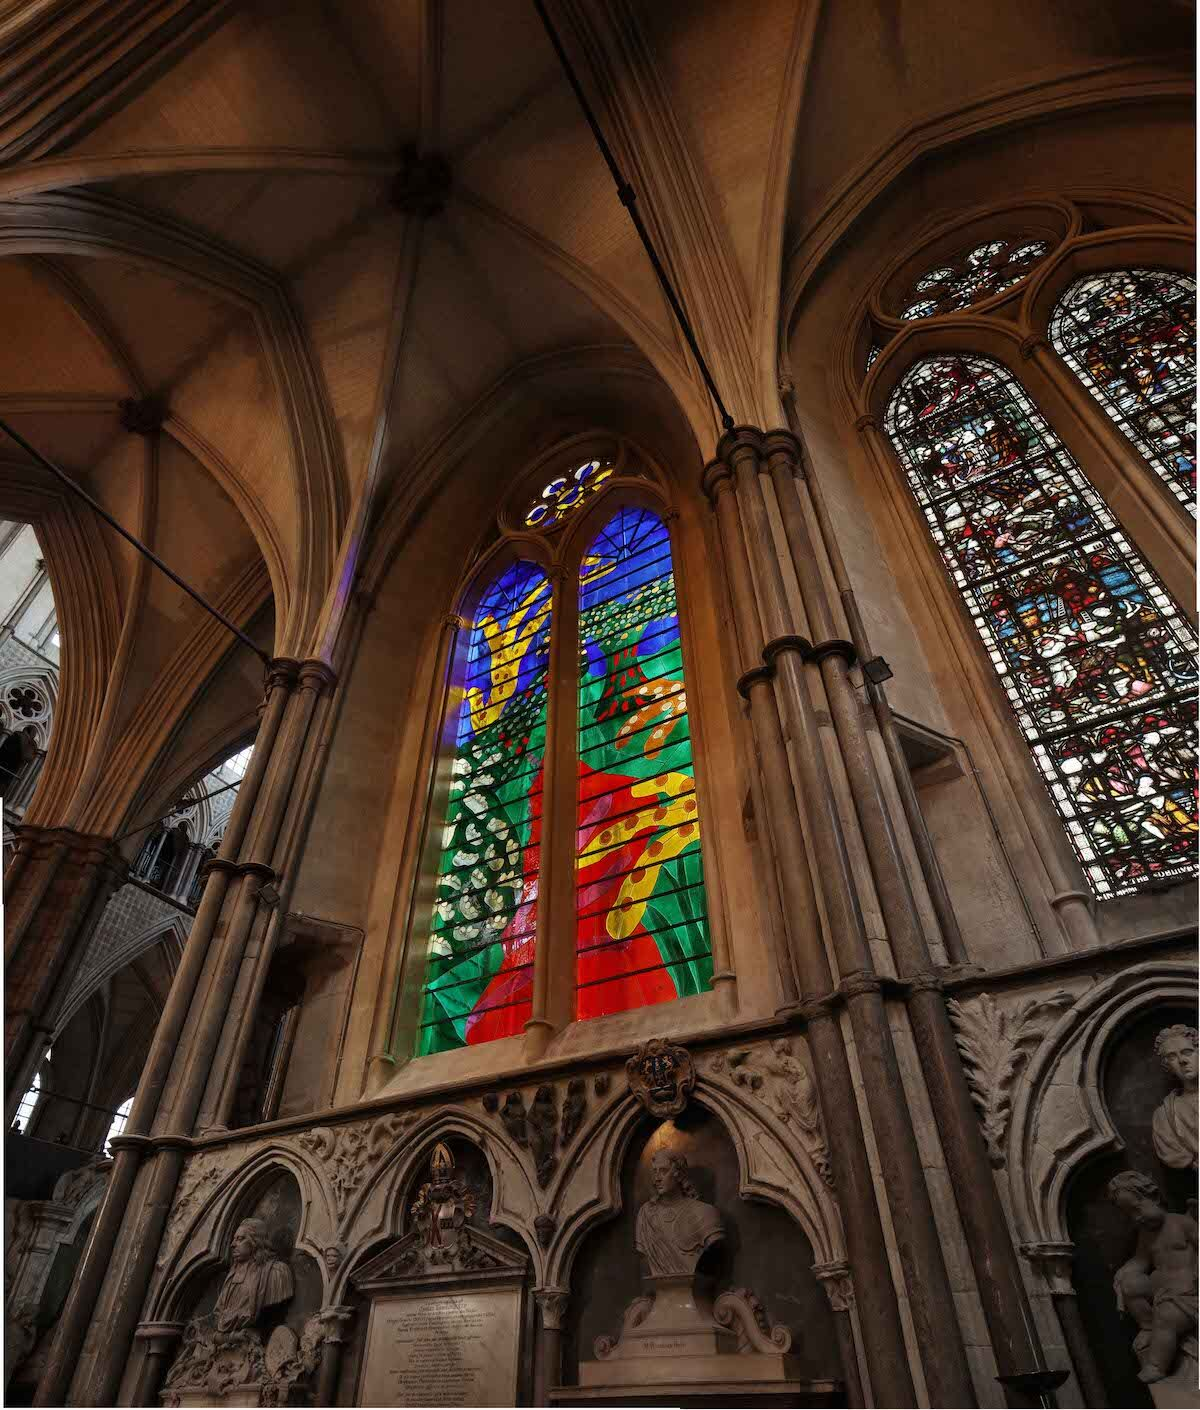 The Queen's Window at Westminster Abbey. Photo by Alan Williams.